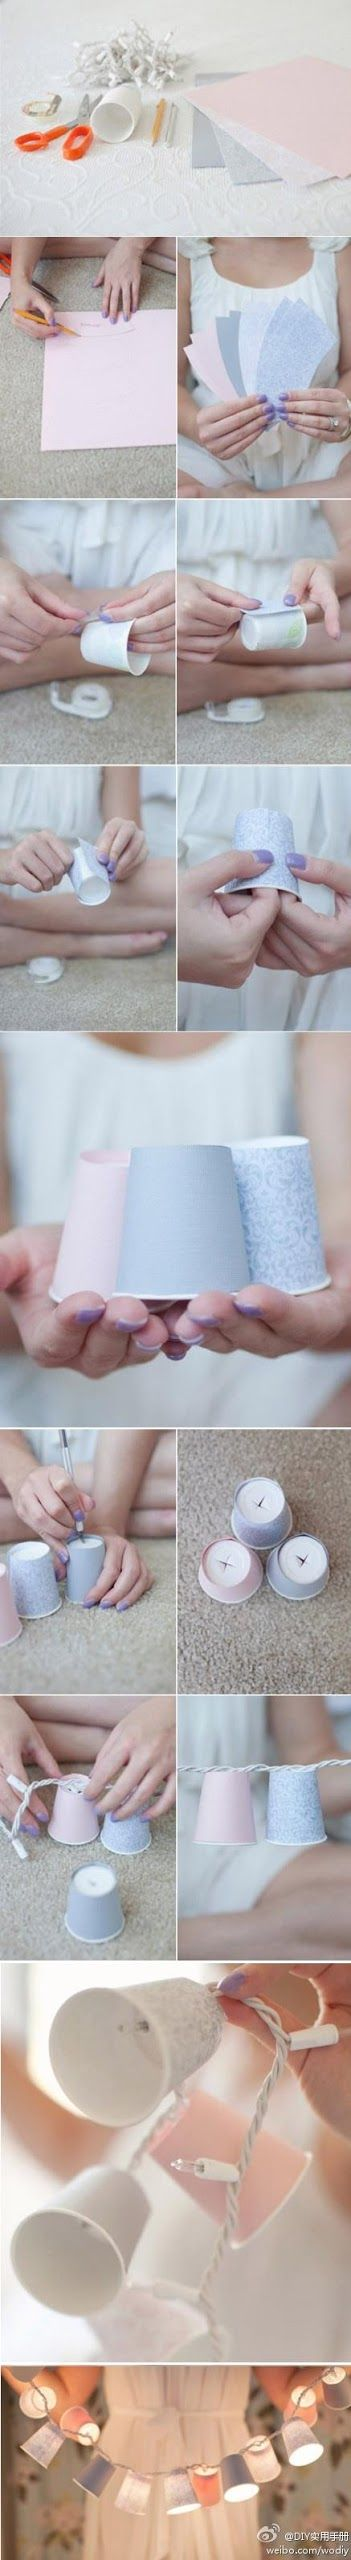 Make light shades with paper cups! I'm totally making these for a fun night or to spice up a party or occasion;) TRY IT<3